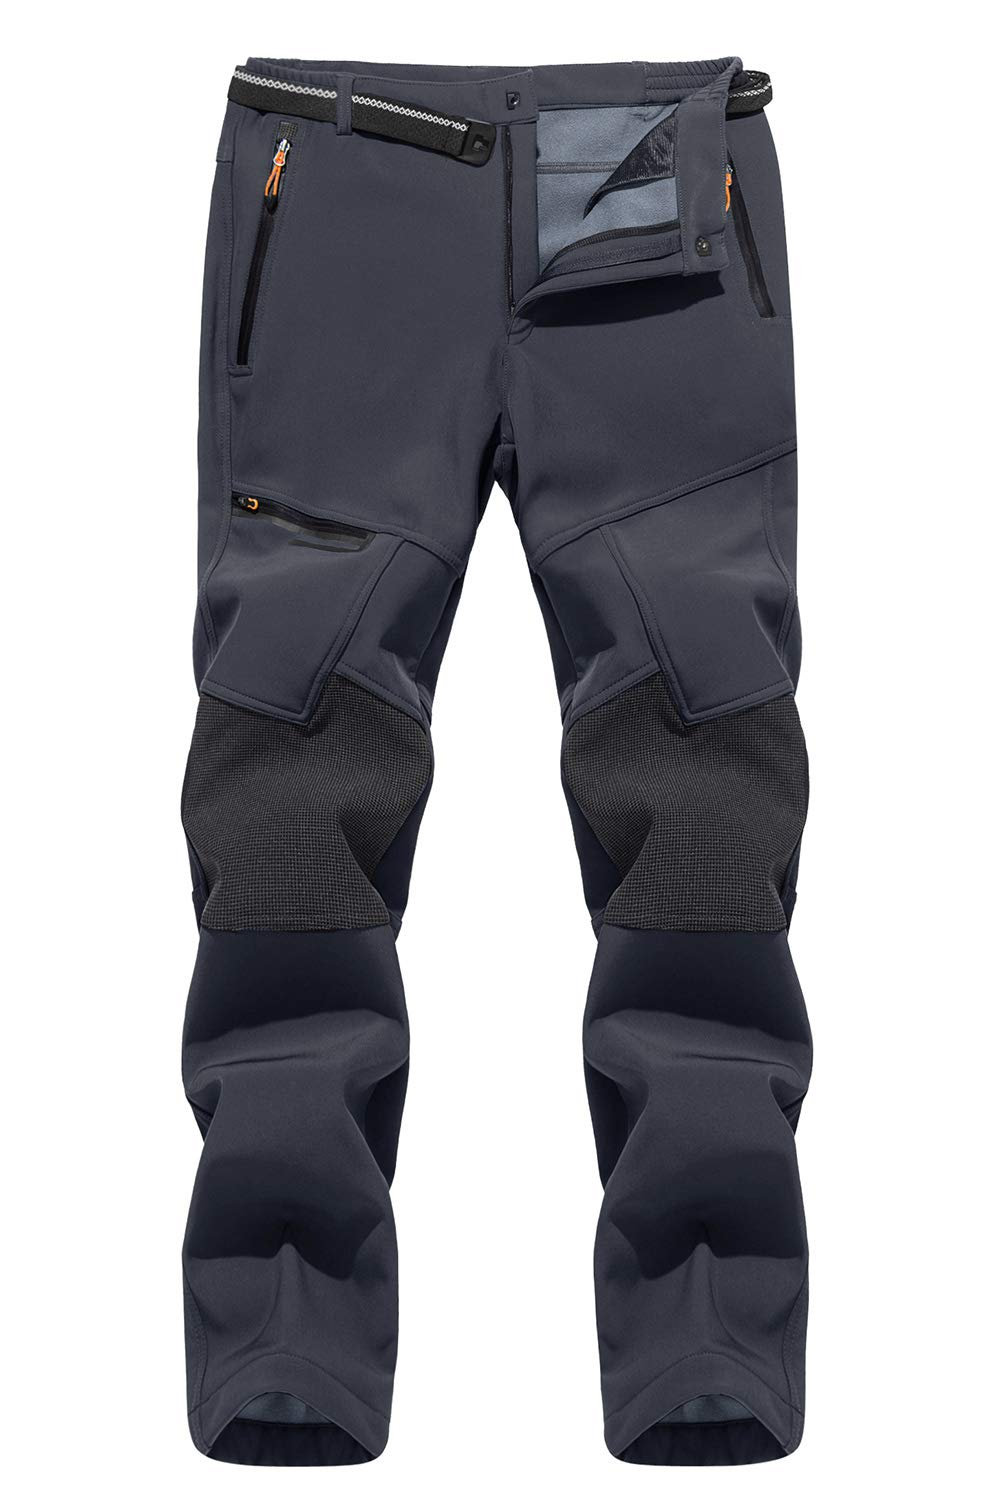 TACVASEN Men's Hiking Pants Reinforced Knees Lightweight and Thick Skiing Snowboard Fleece Lined Pants (No Belt)